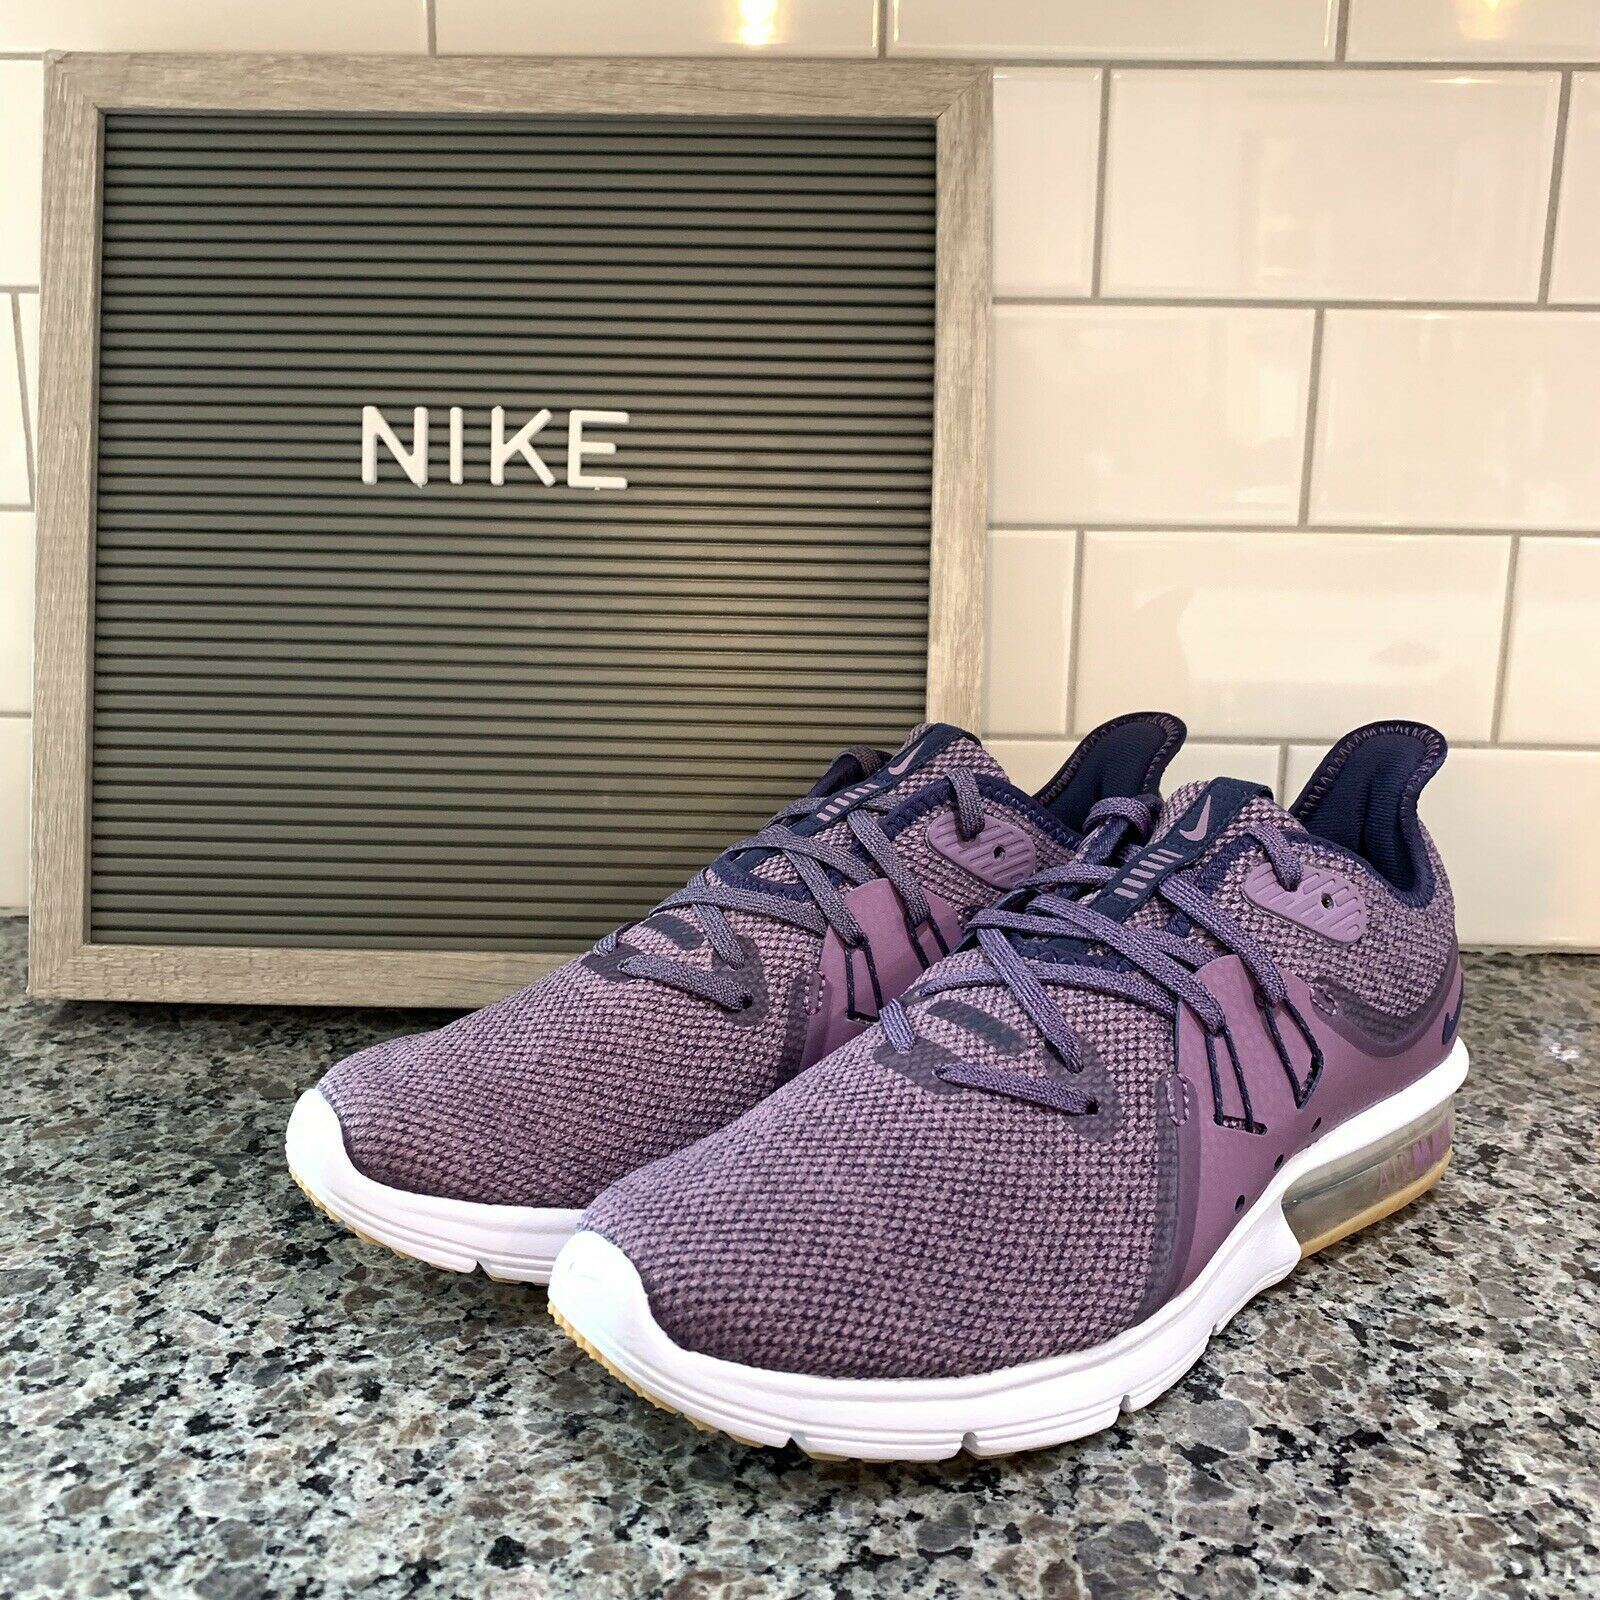 Nike Air Max Womens Sequent 3 Running shoes purple 908993 501 Size 7